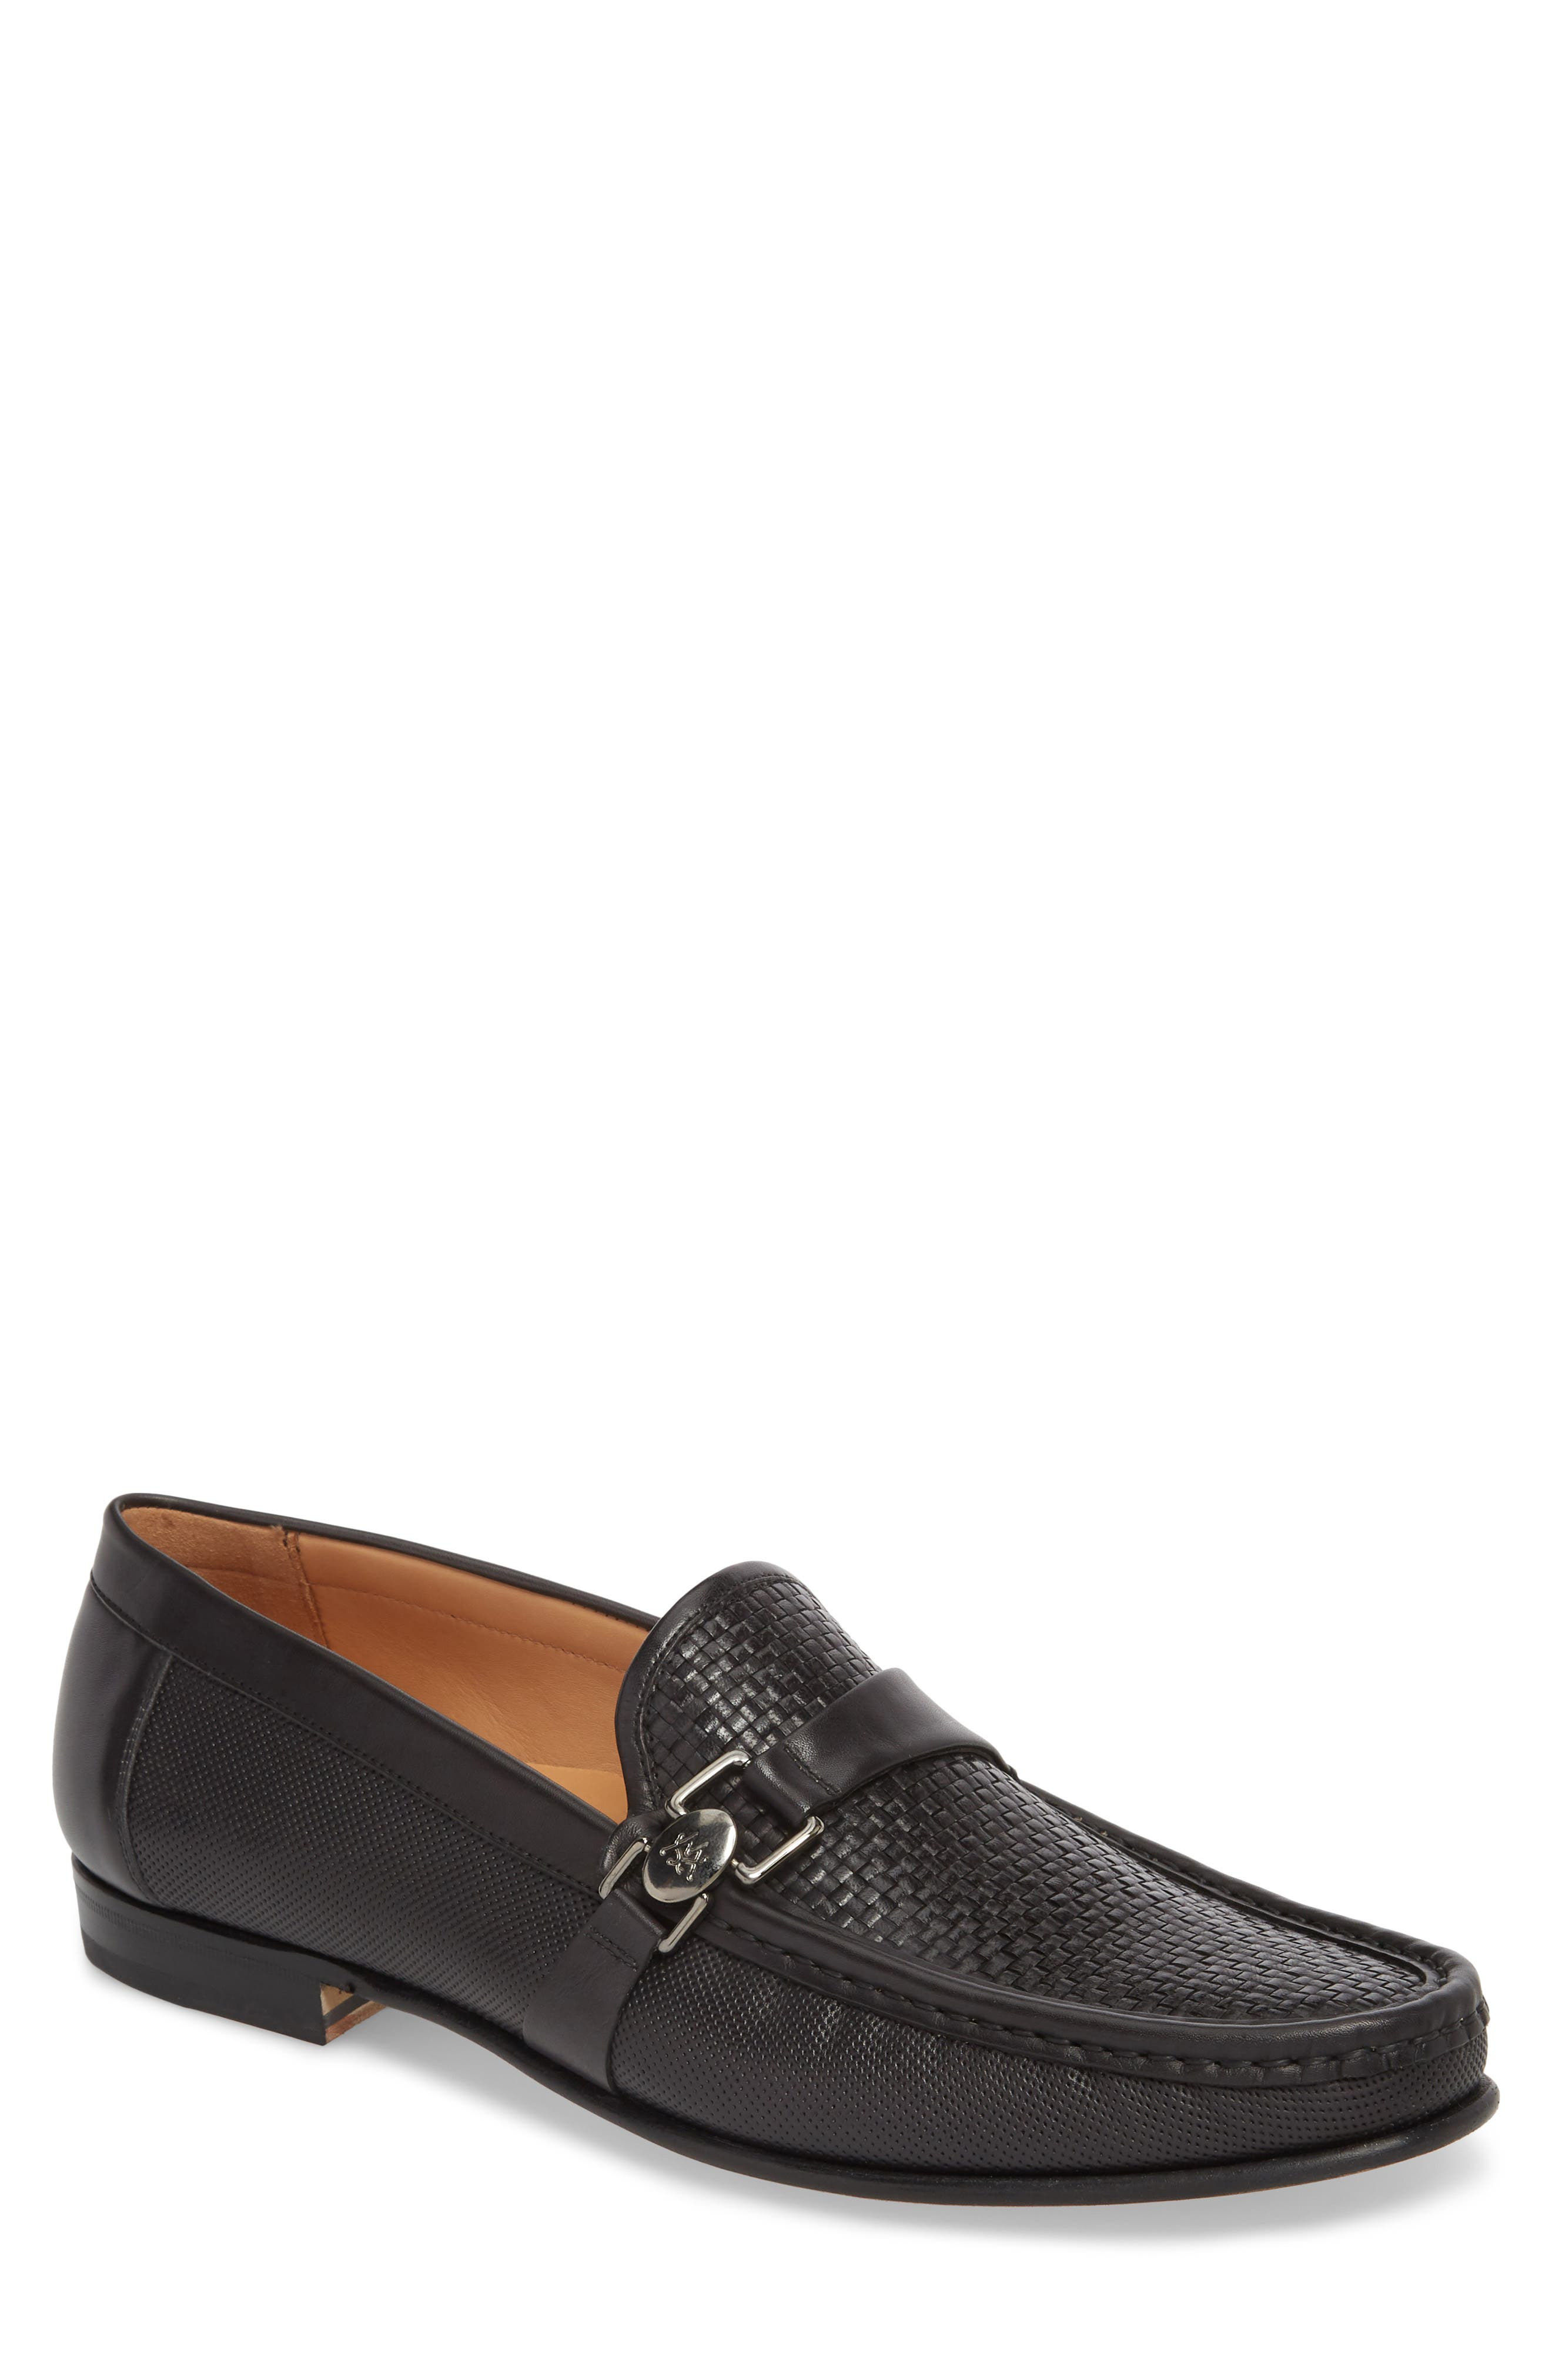 Horatio Woven Moc Toe Loafer,                             Main thumbnail 1, color,                             Black Leather